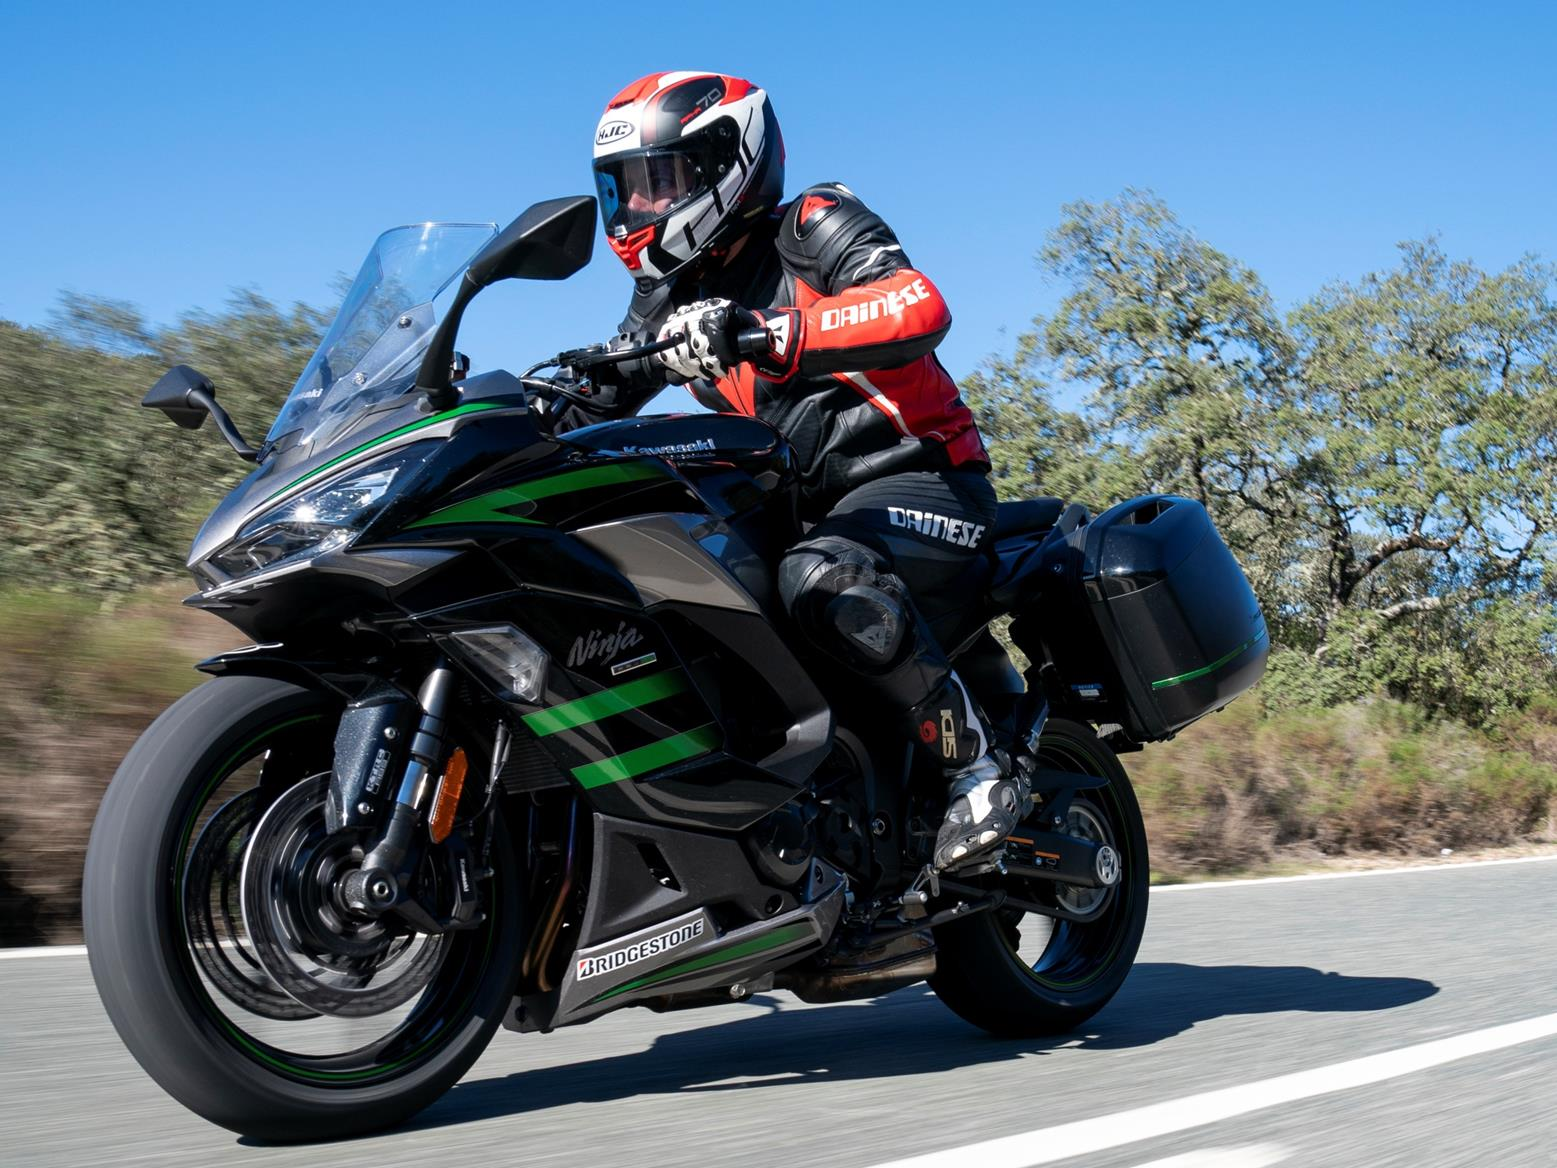 KAWASAKI NINJA 1000SX (2020-on) Review